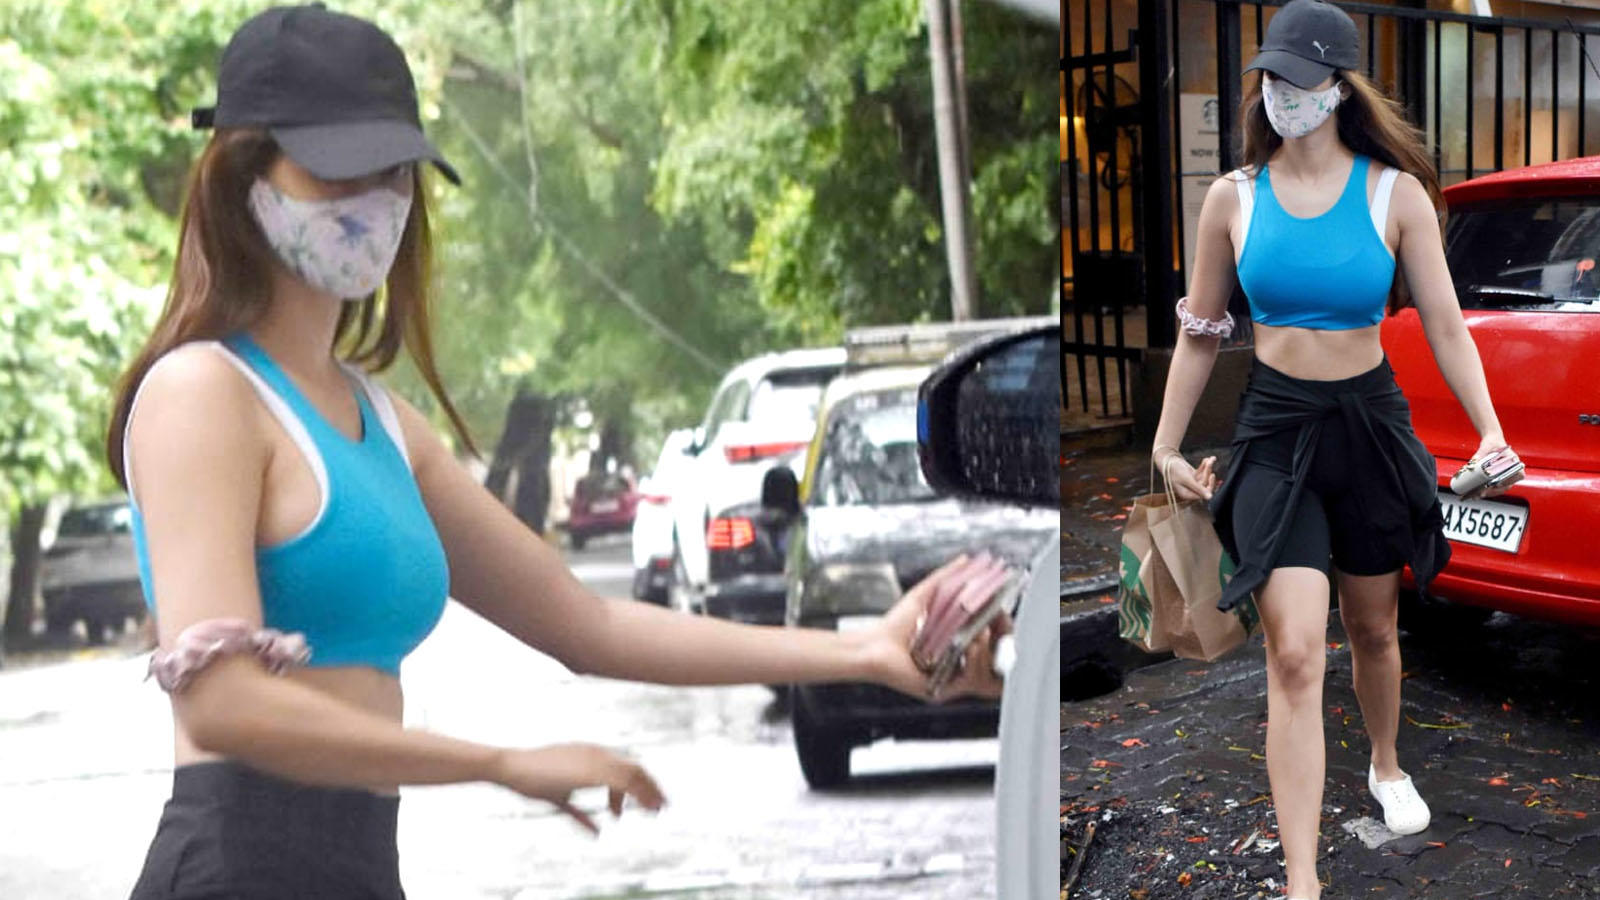 spotted-disha-patani-looks-fit-as-a-fiddle-while-running-an-errand-in-the-city-as-lockdown-eases-actress-adheres-to-govt-guidelines-by-wearing-face-mask